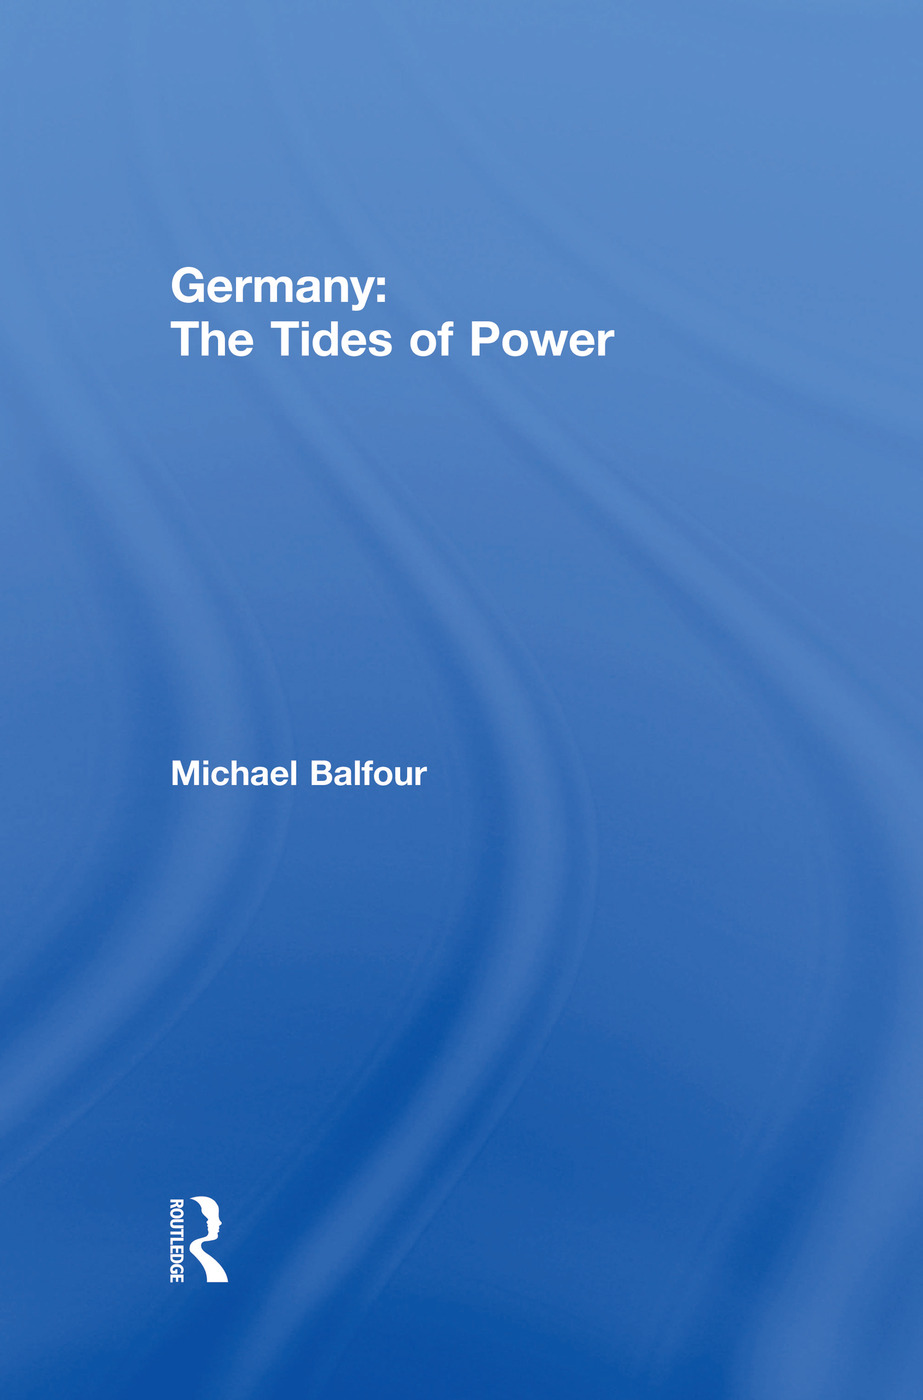 Germany - The Tides of Power